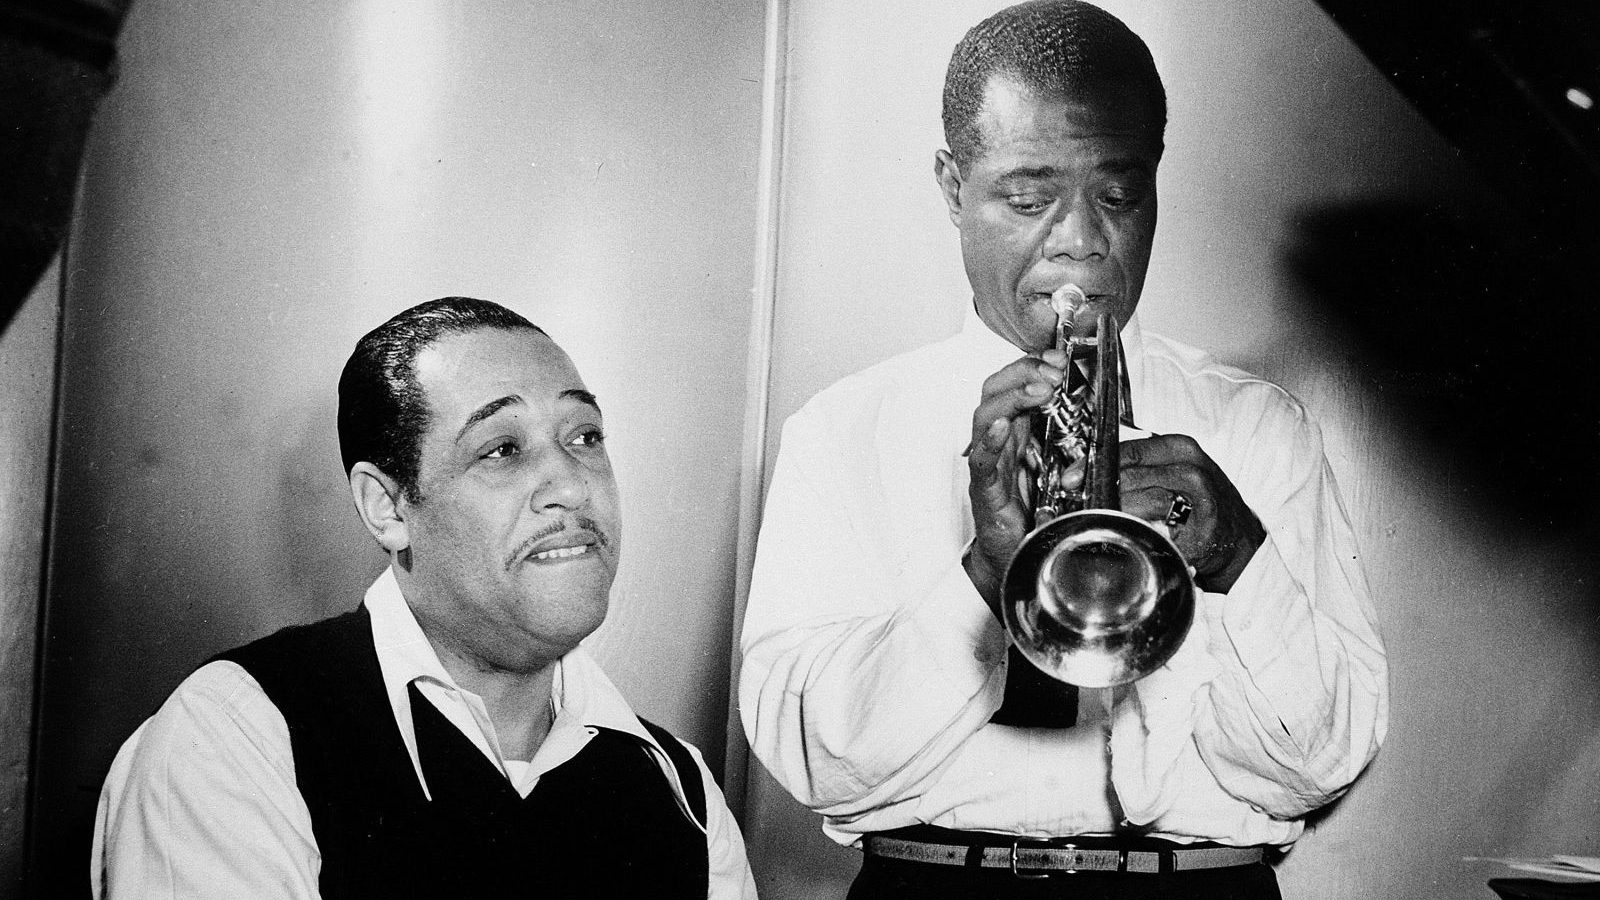 """Duke Ellington at the piano and Louis Armstrong on trumpet rehearse Leonard Feather's """"Long, Long Journey"""" during a session at the RCA Victor recording studio in New York, Jan. 12, 1946. (AP Photo)"""